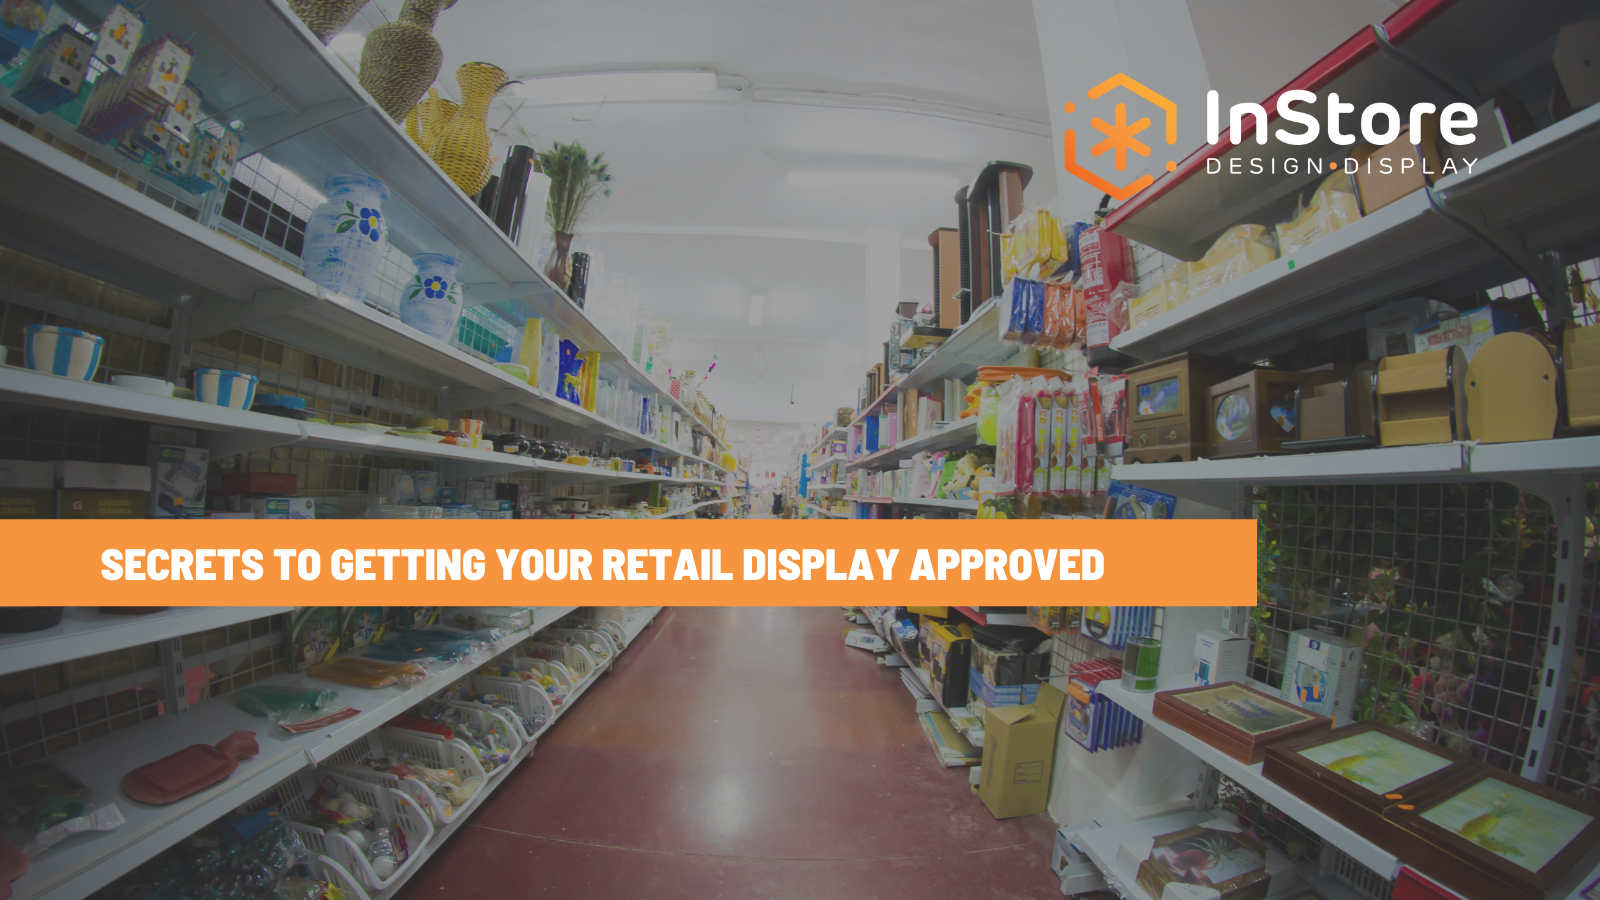 5 Must-Haves BEFORE Presenting Your Retail Display Program